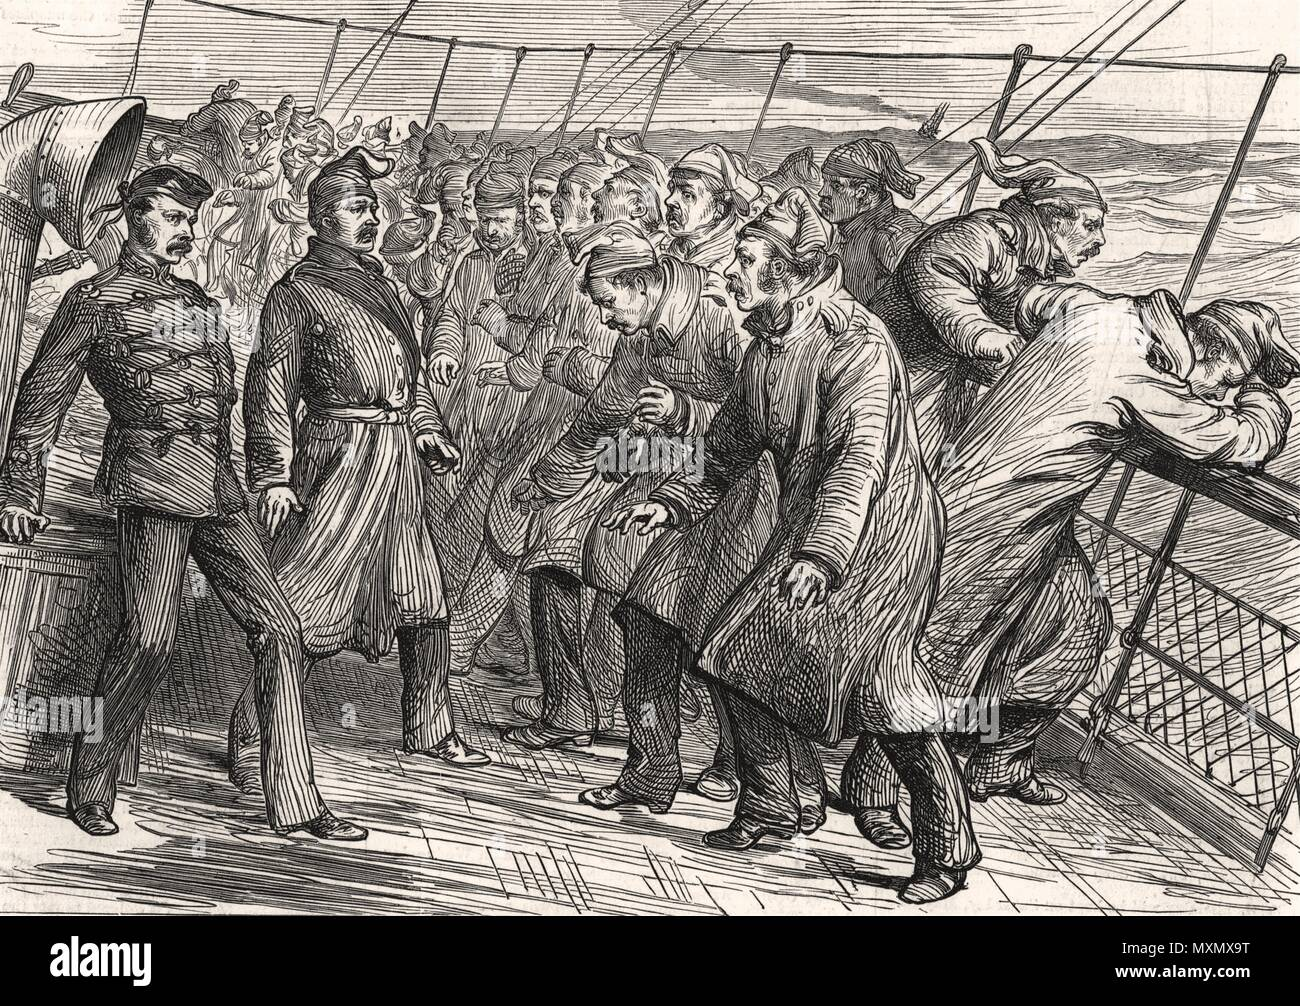 Kaffir War troop transport A tricky parade on board the Nubian 1878. The Illustrated London News Stock Photo